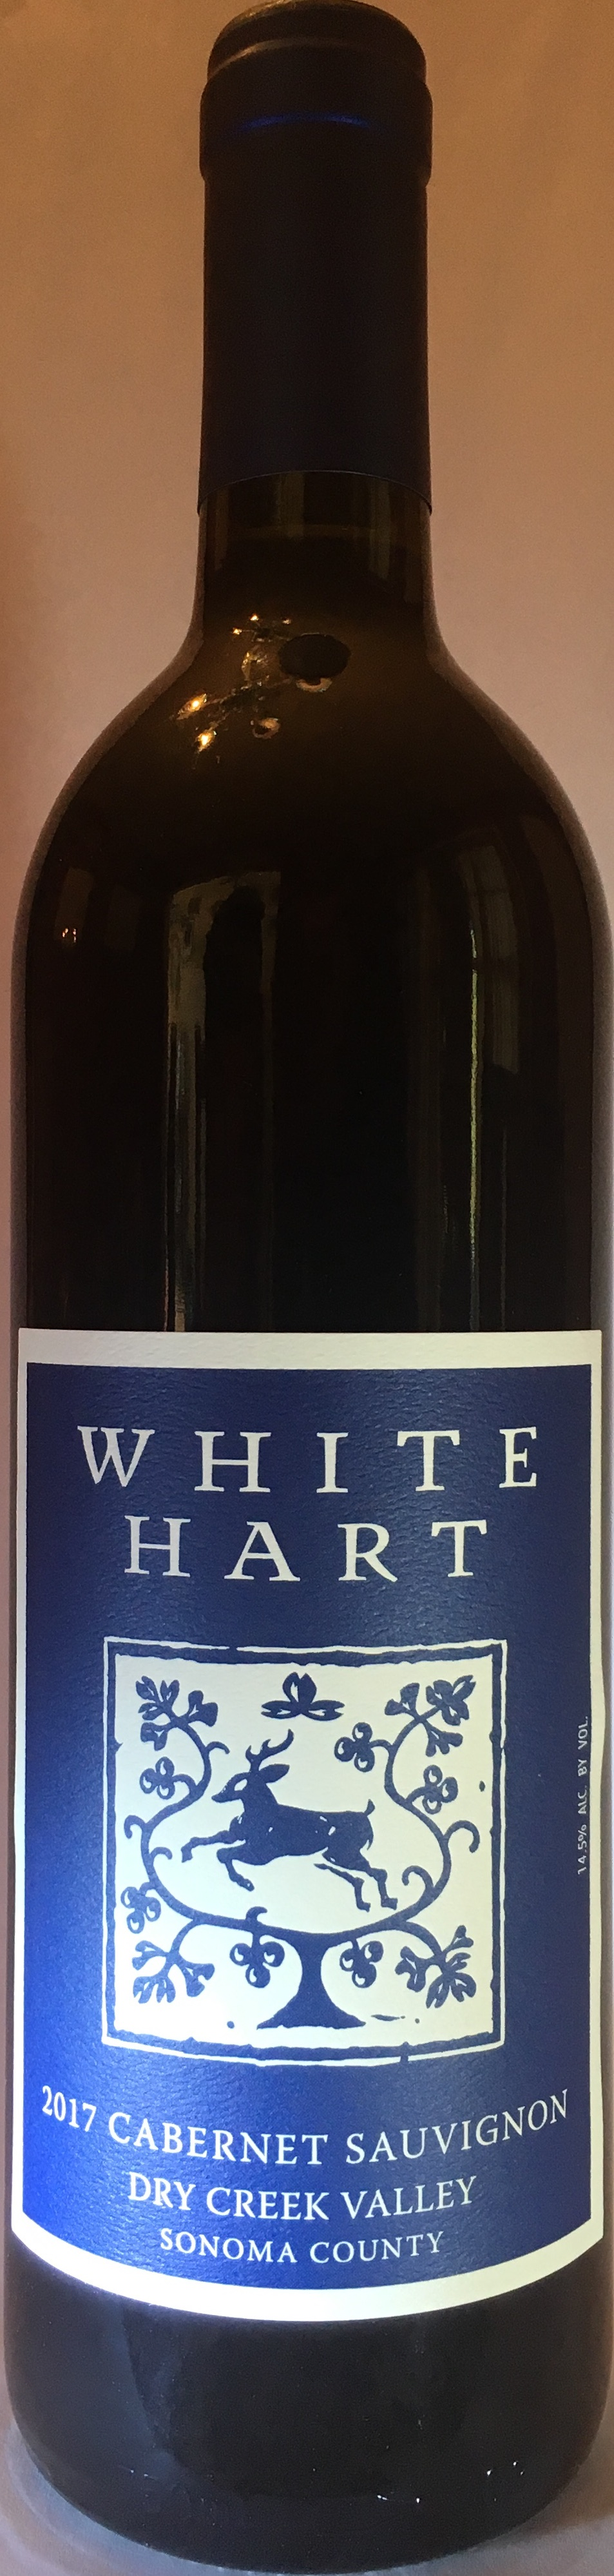 WHITE HART DCV CS17 bottle shot